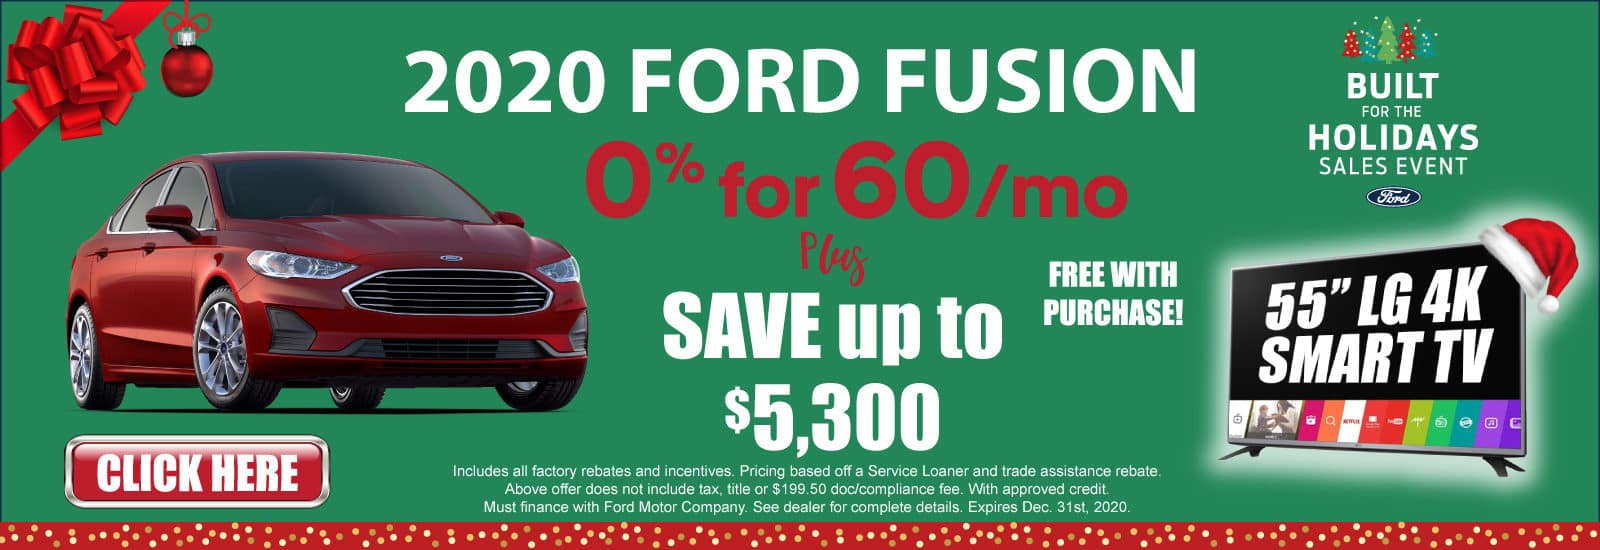 holiday2020-Ford-Fusion-Web-Banner-1600×550